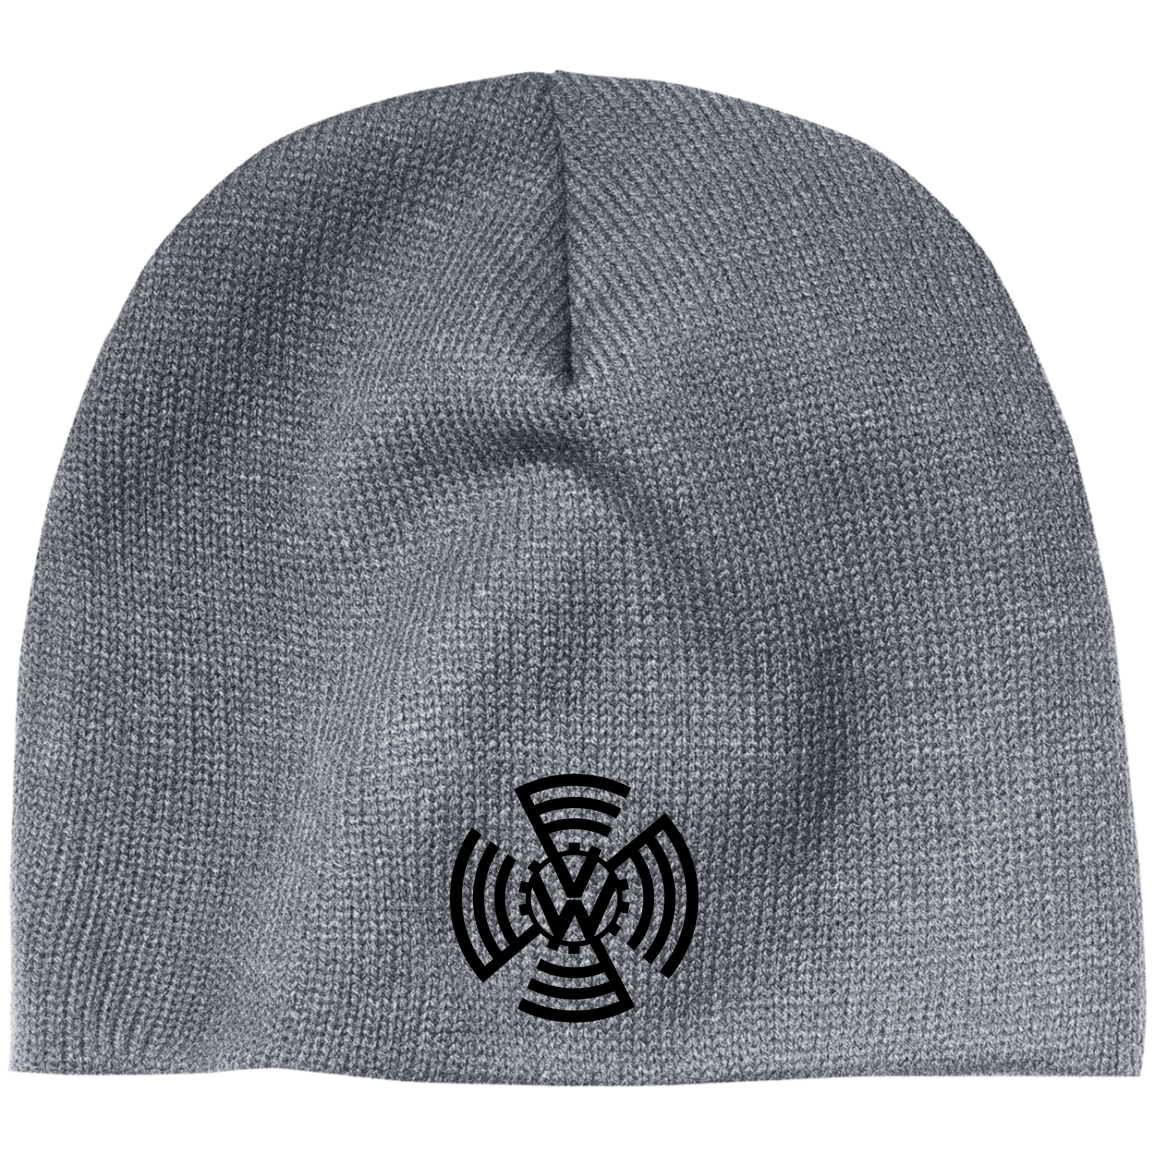 KDF Embroidered Beanie, - Aircooled VW - Vintage Vdub